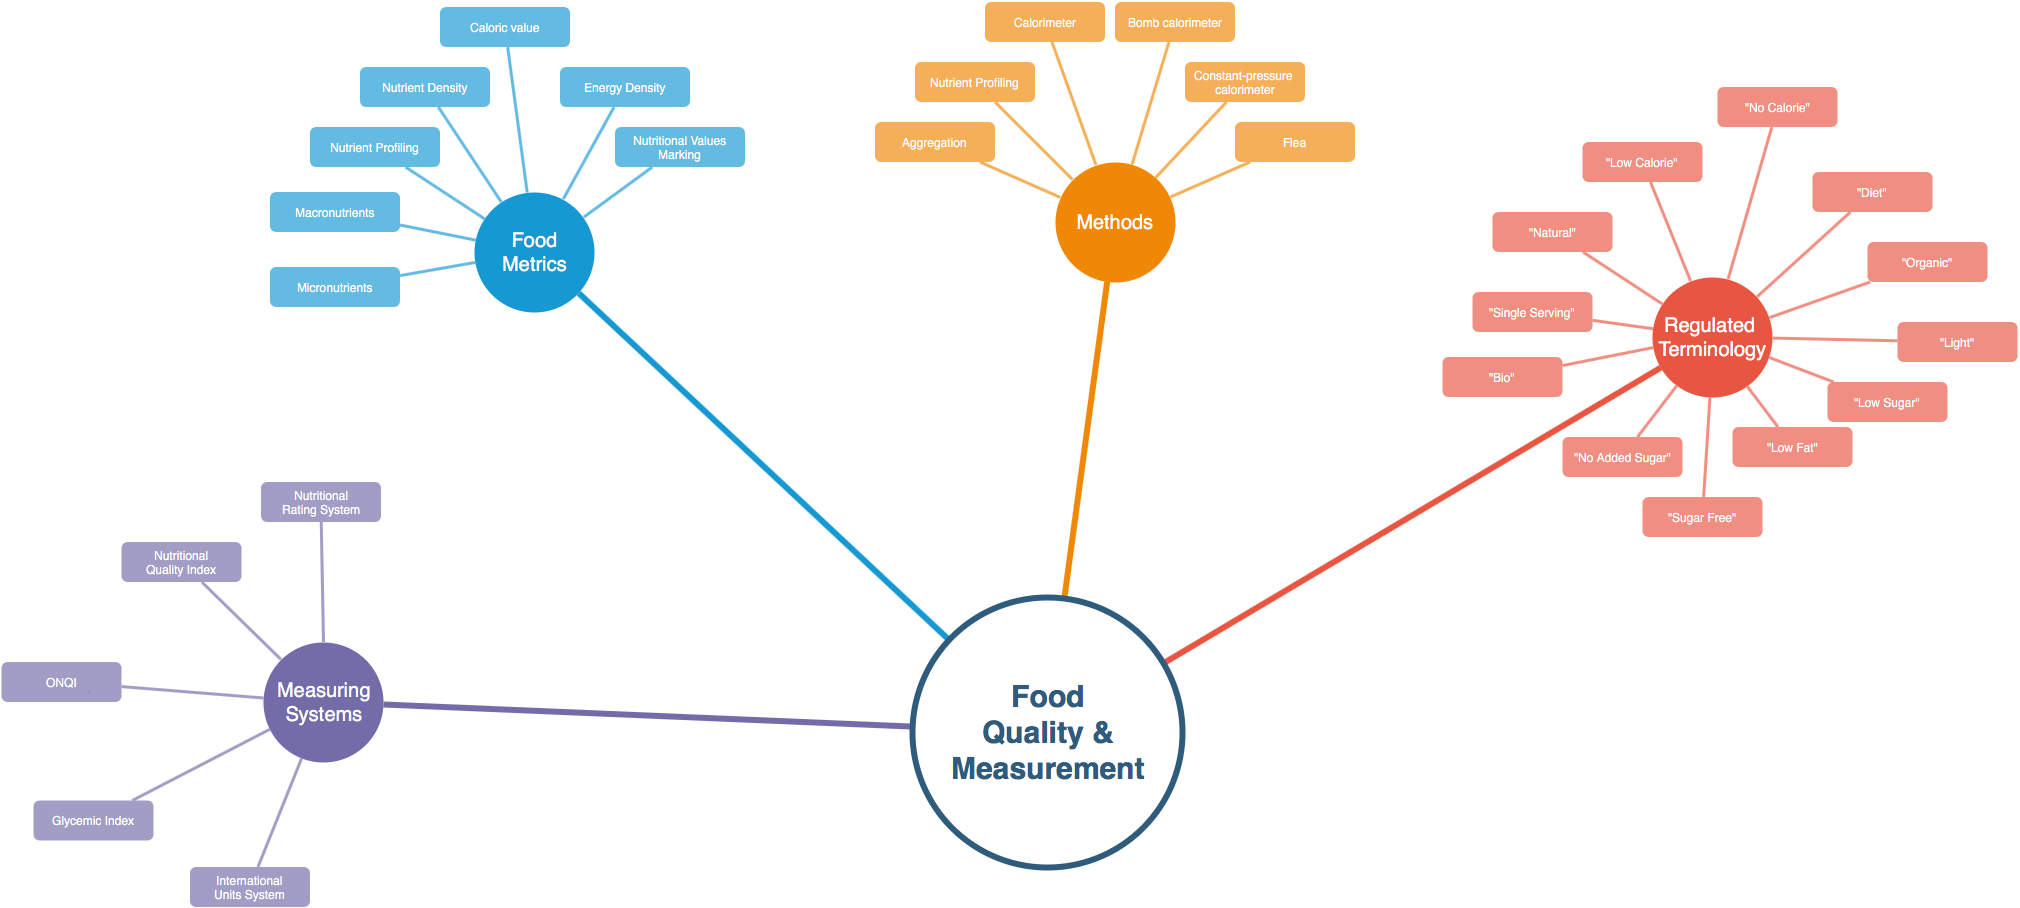 An initial taxonomy of Food Measurement Science and Business